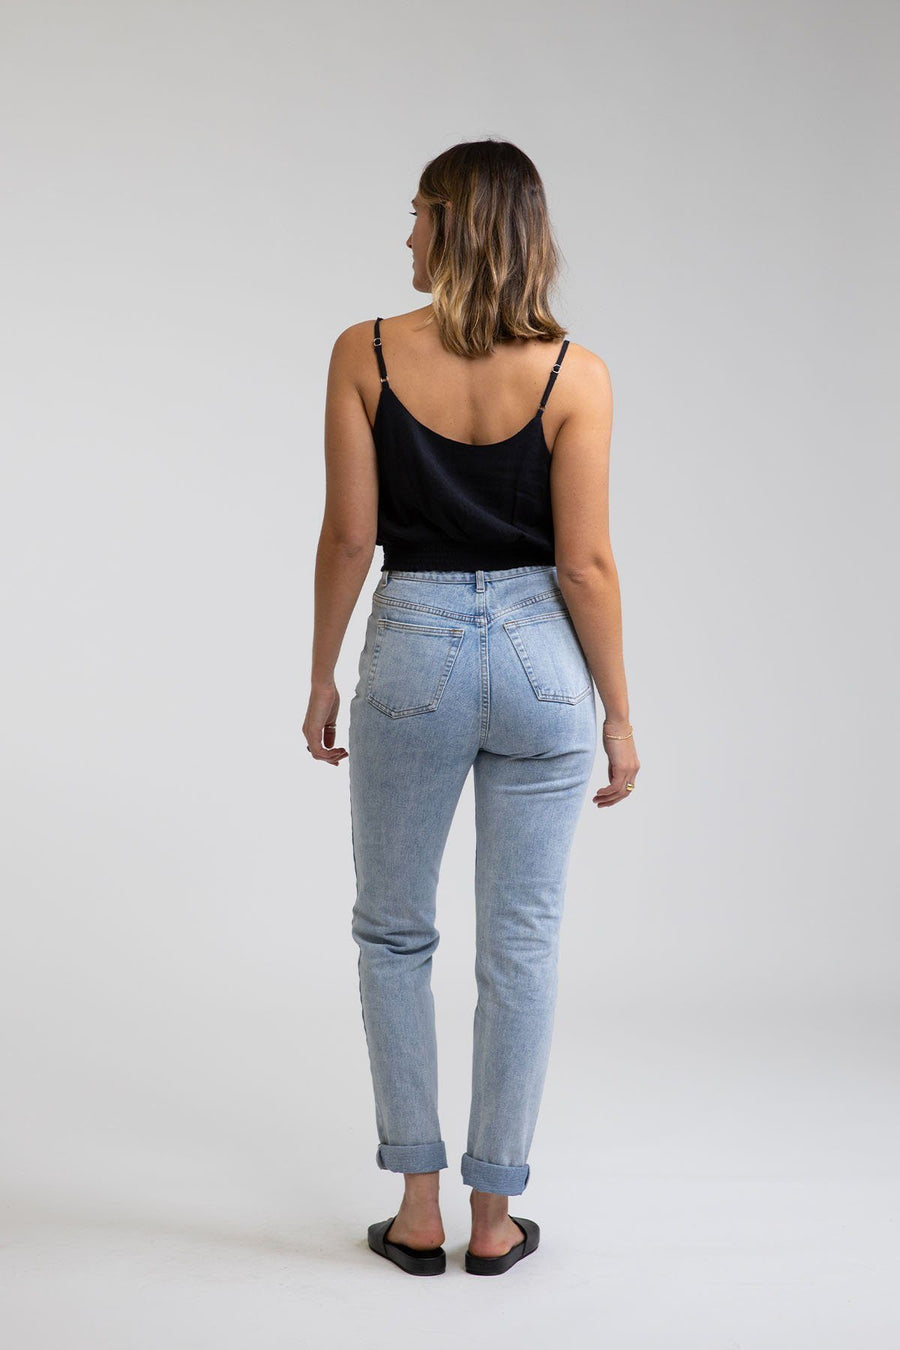 RHYTHM Hi Rise Tapered Jean Women's Light Blue WOMENS APPAREL - Women's Denim Rhythm